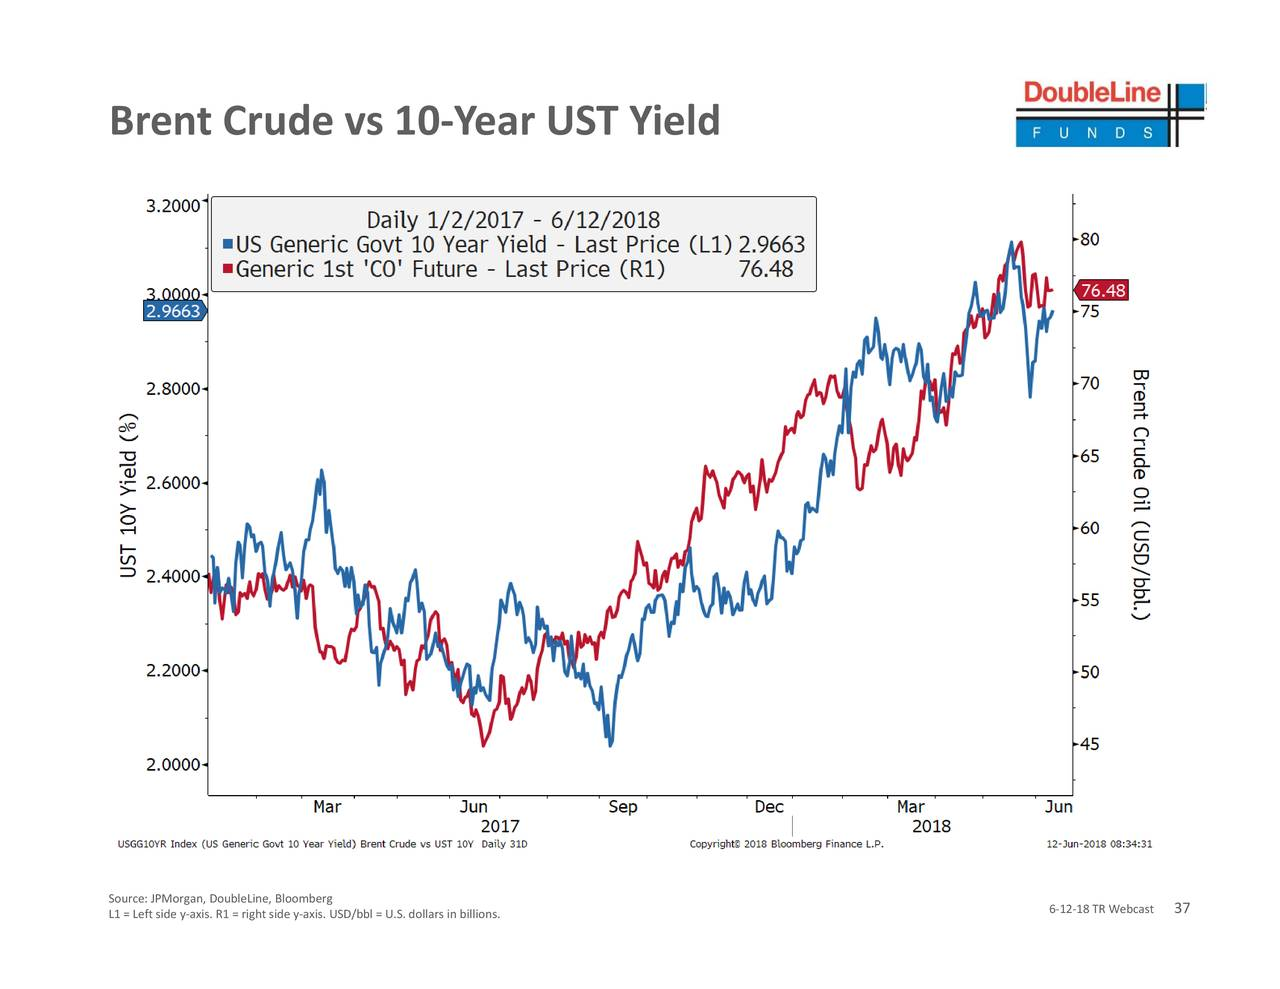 The investment seeks to provide with exposure to the S&P GSCI- Crude Oil Total Return Index. The S&P GSCI- Crude Oil Total Return Index (the